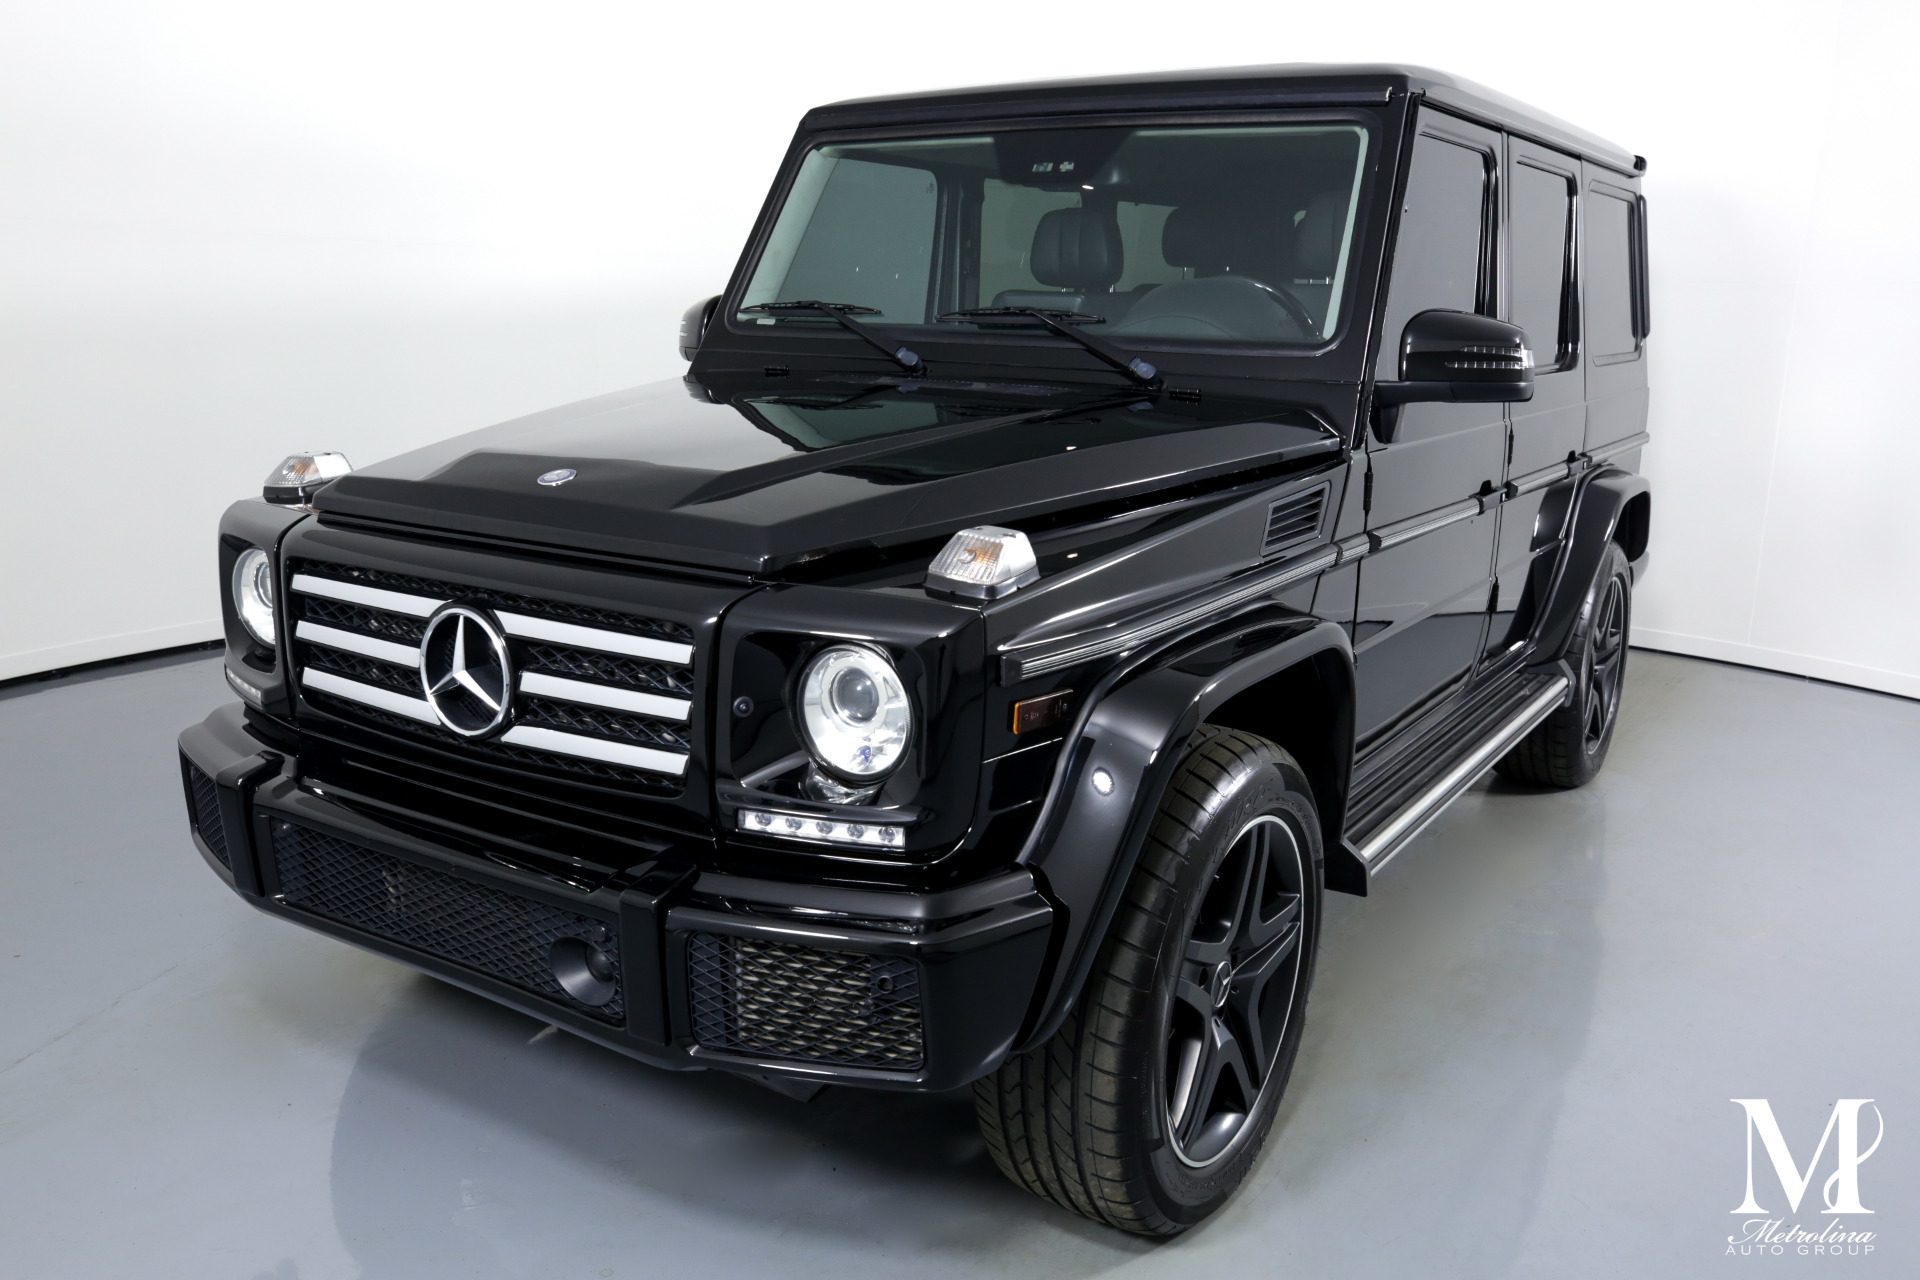 Used 2017 Mercedes-Benz G-Class G 550 for sale $74,996 at Metrolina Auto Group in Charlotte NC 28217 - 4